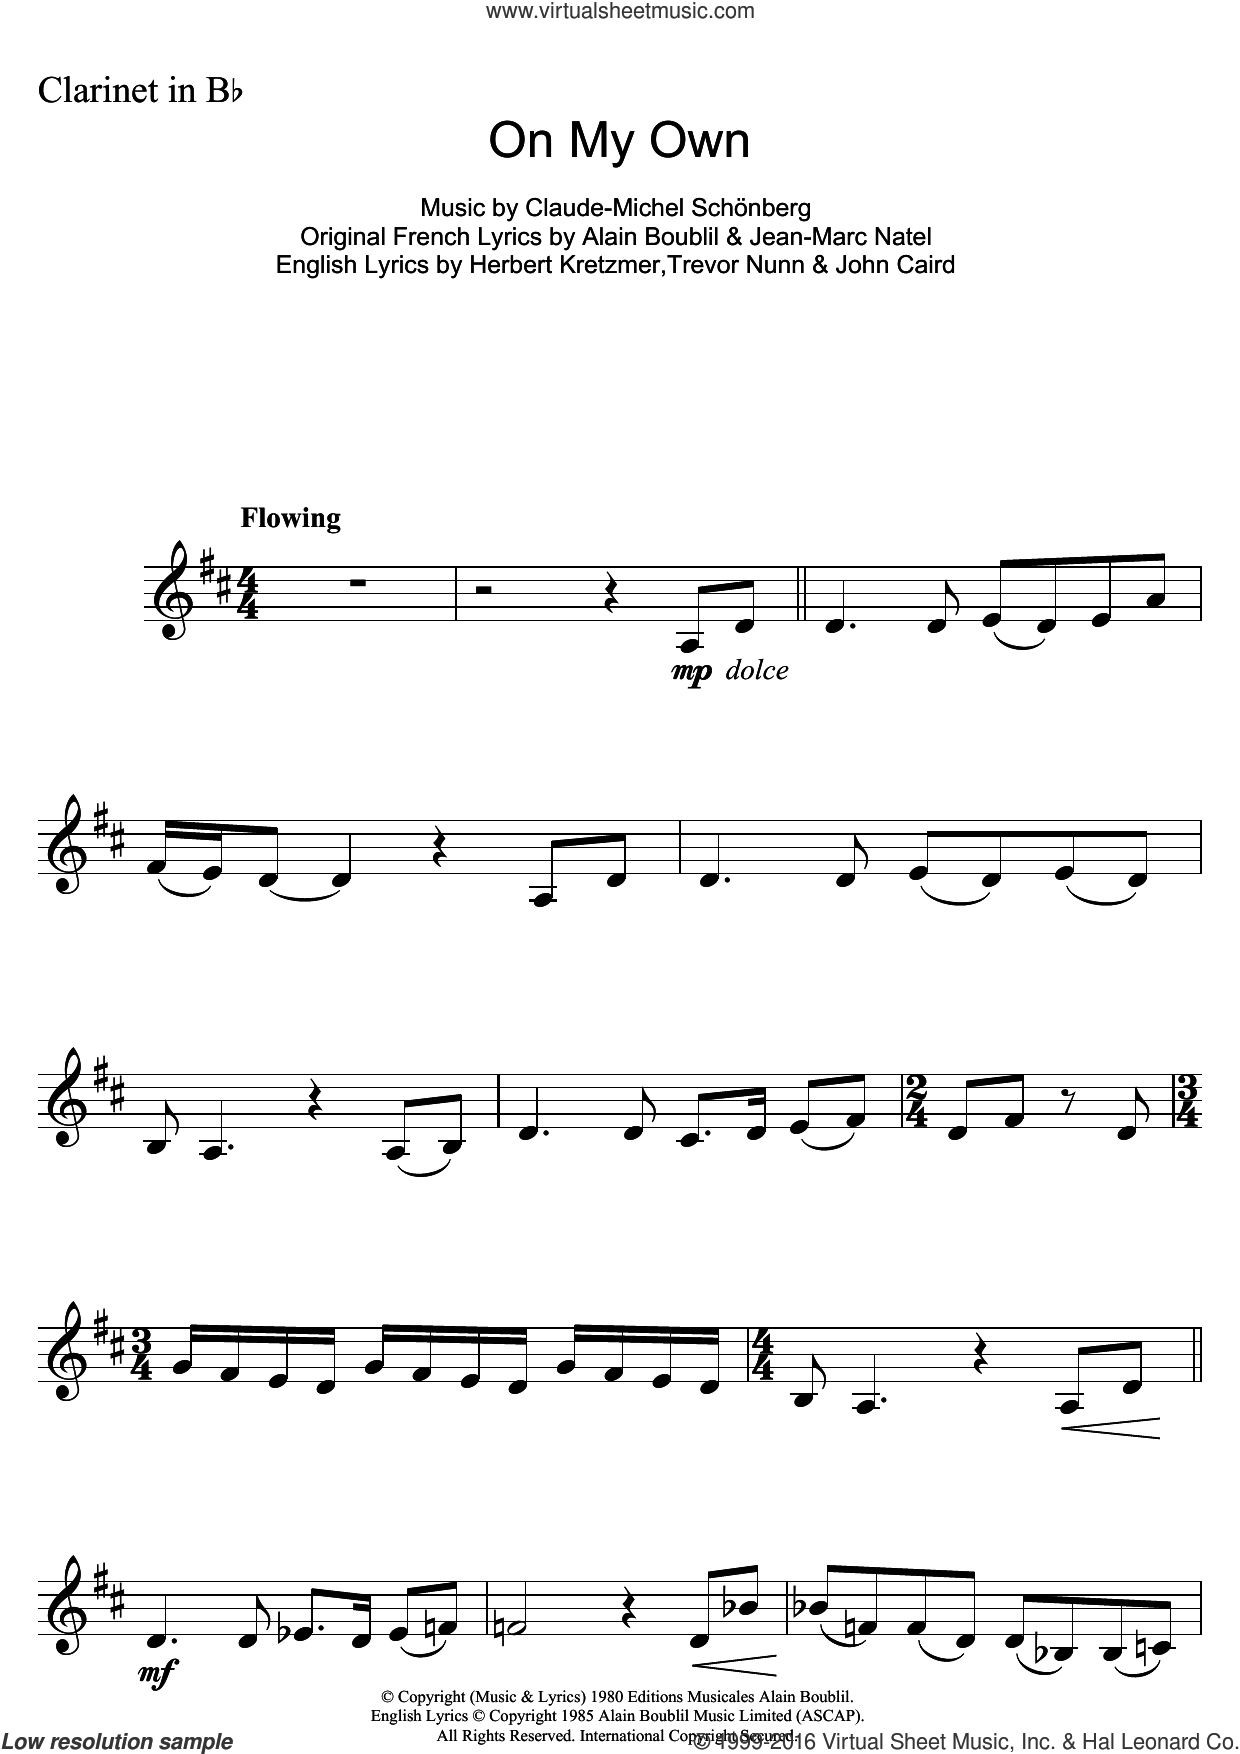 On My Own (from Les Miserables) sheet music for clarinet solo by Trevor Nunn